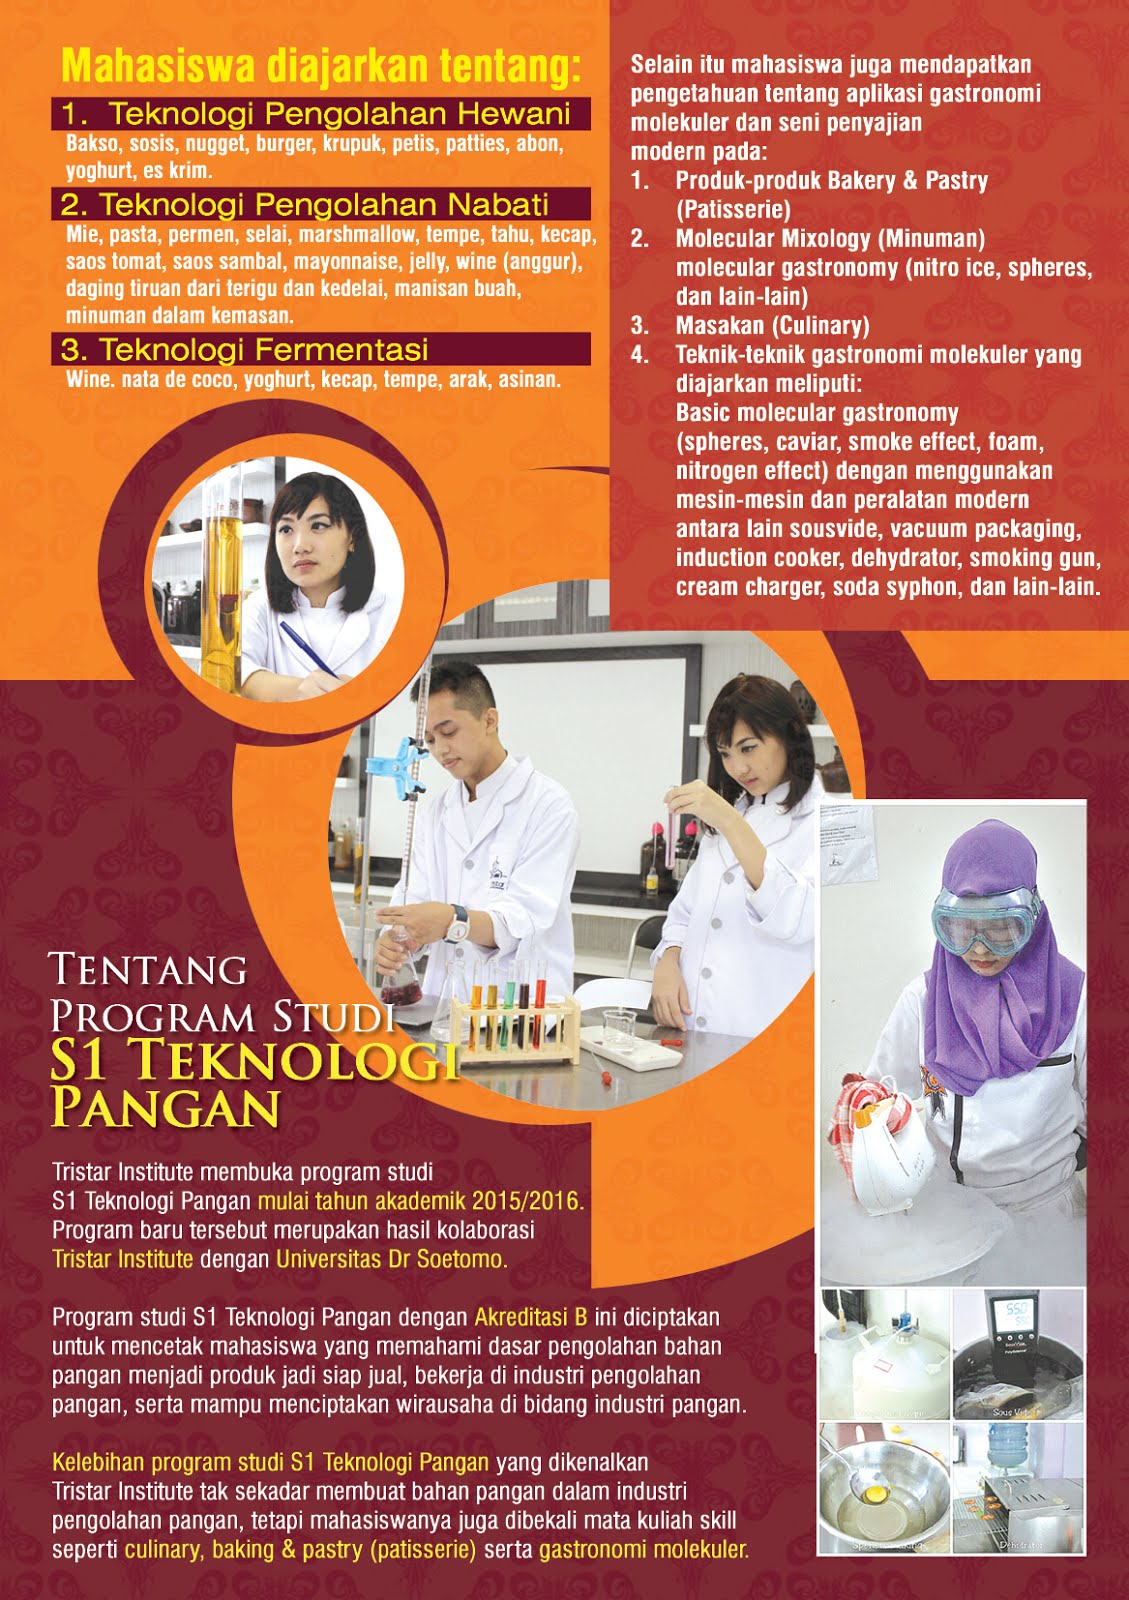 ALL ABOUT TEKNOLOGI PANGAN